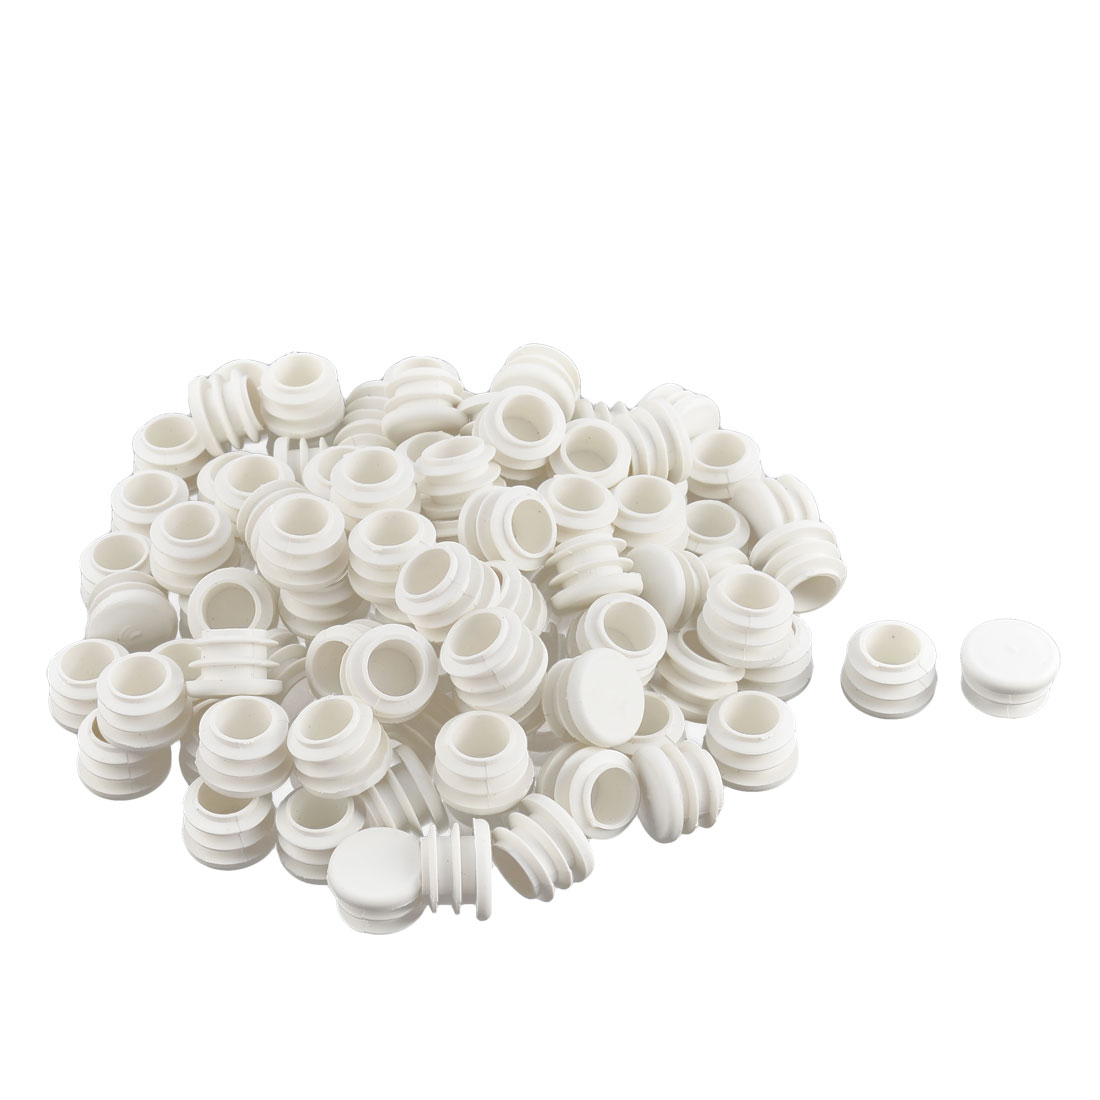 Household Office Plastic Round Shaped Table Chair Legs Tube Insert White 104 Pcs